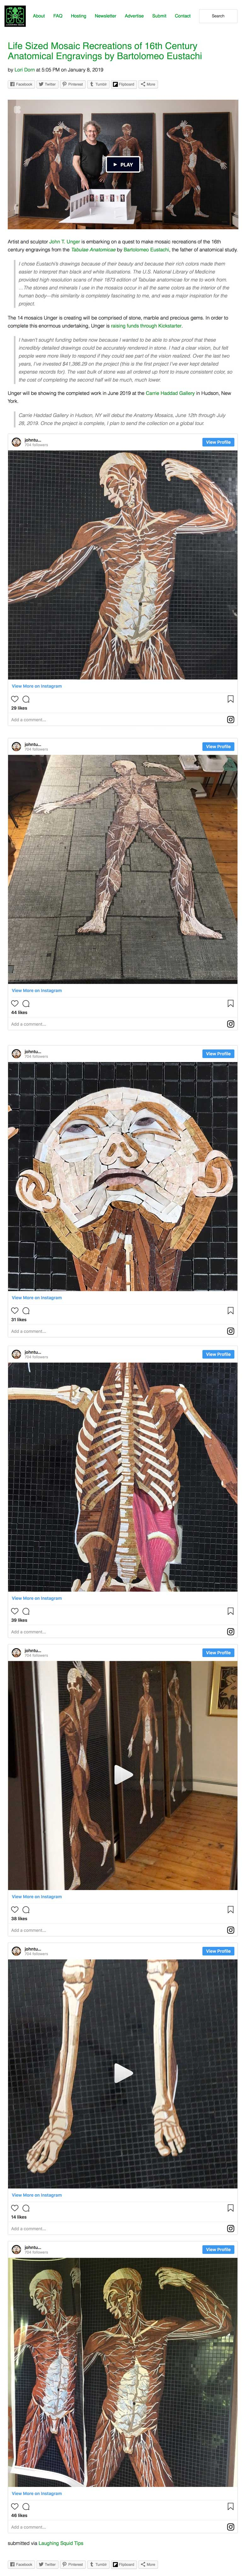 """Life Sized Mosaic Recreations of 16th Century Anatomical Engravings by Bartolomeo Eustachi."" Laughing Squid, 8 Jan. 2019"